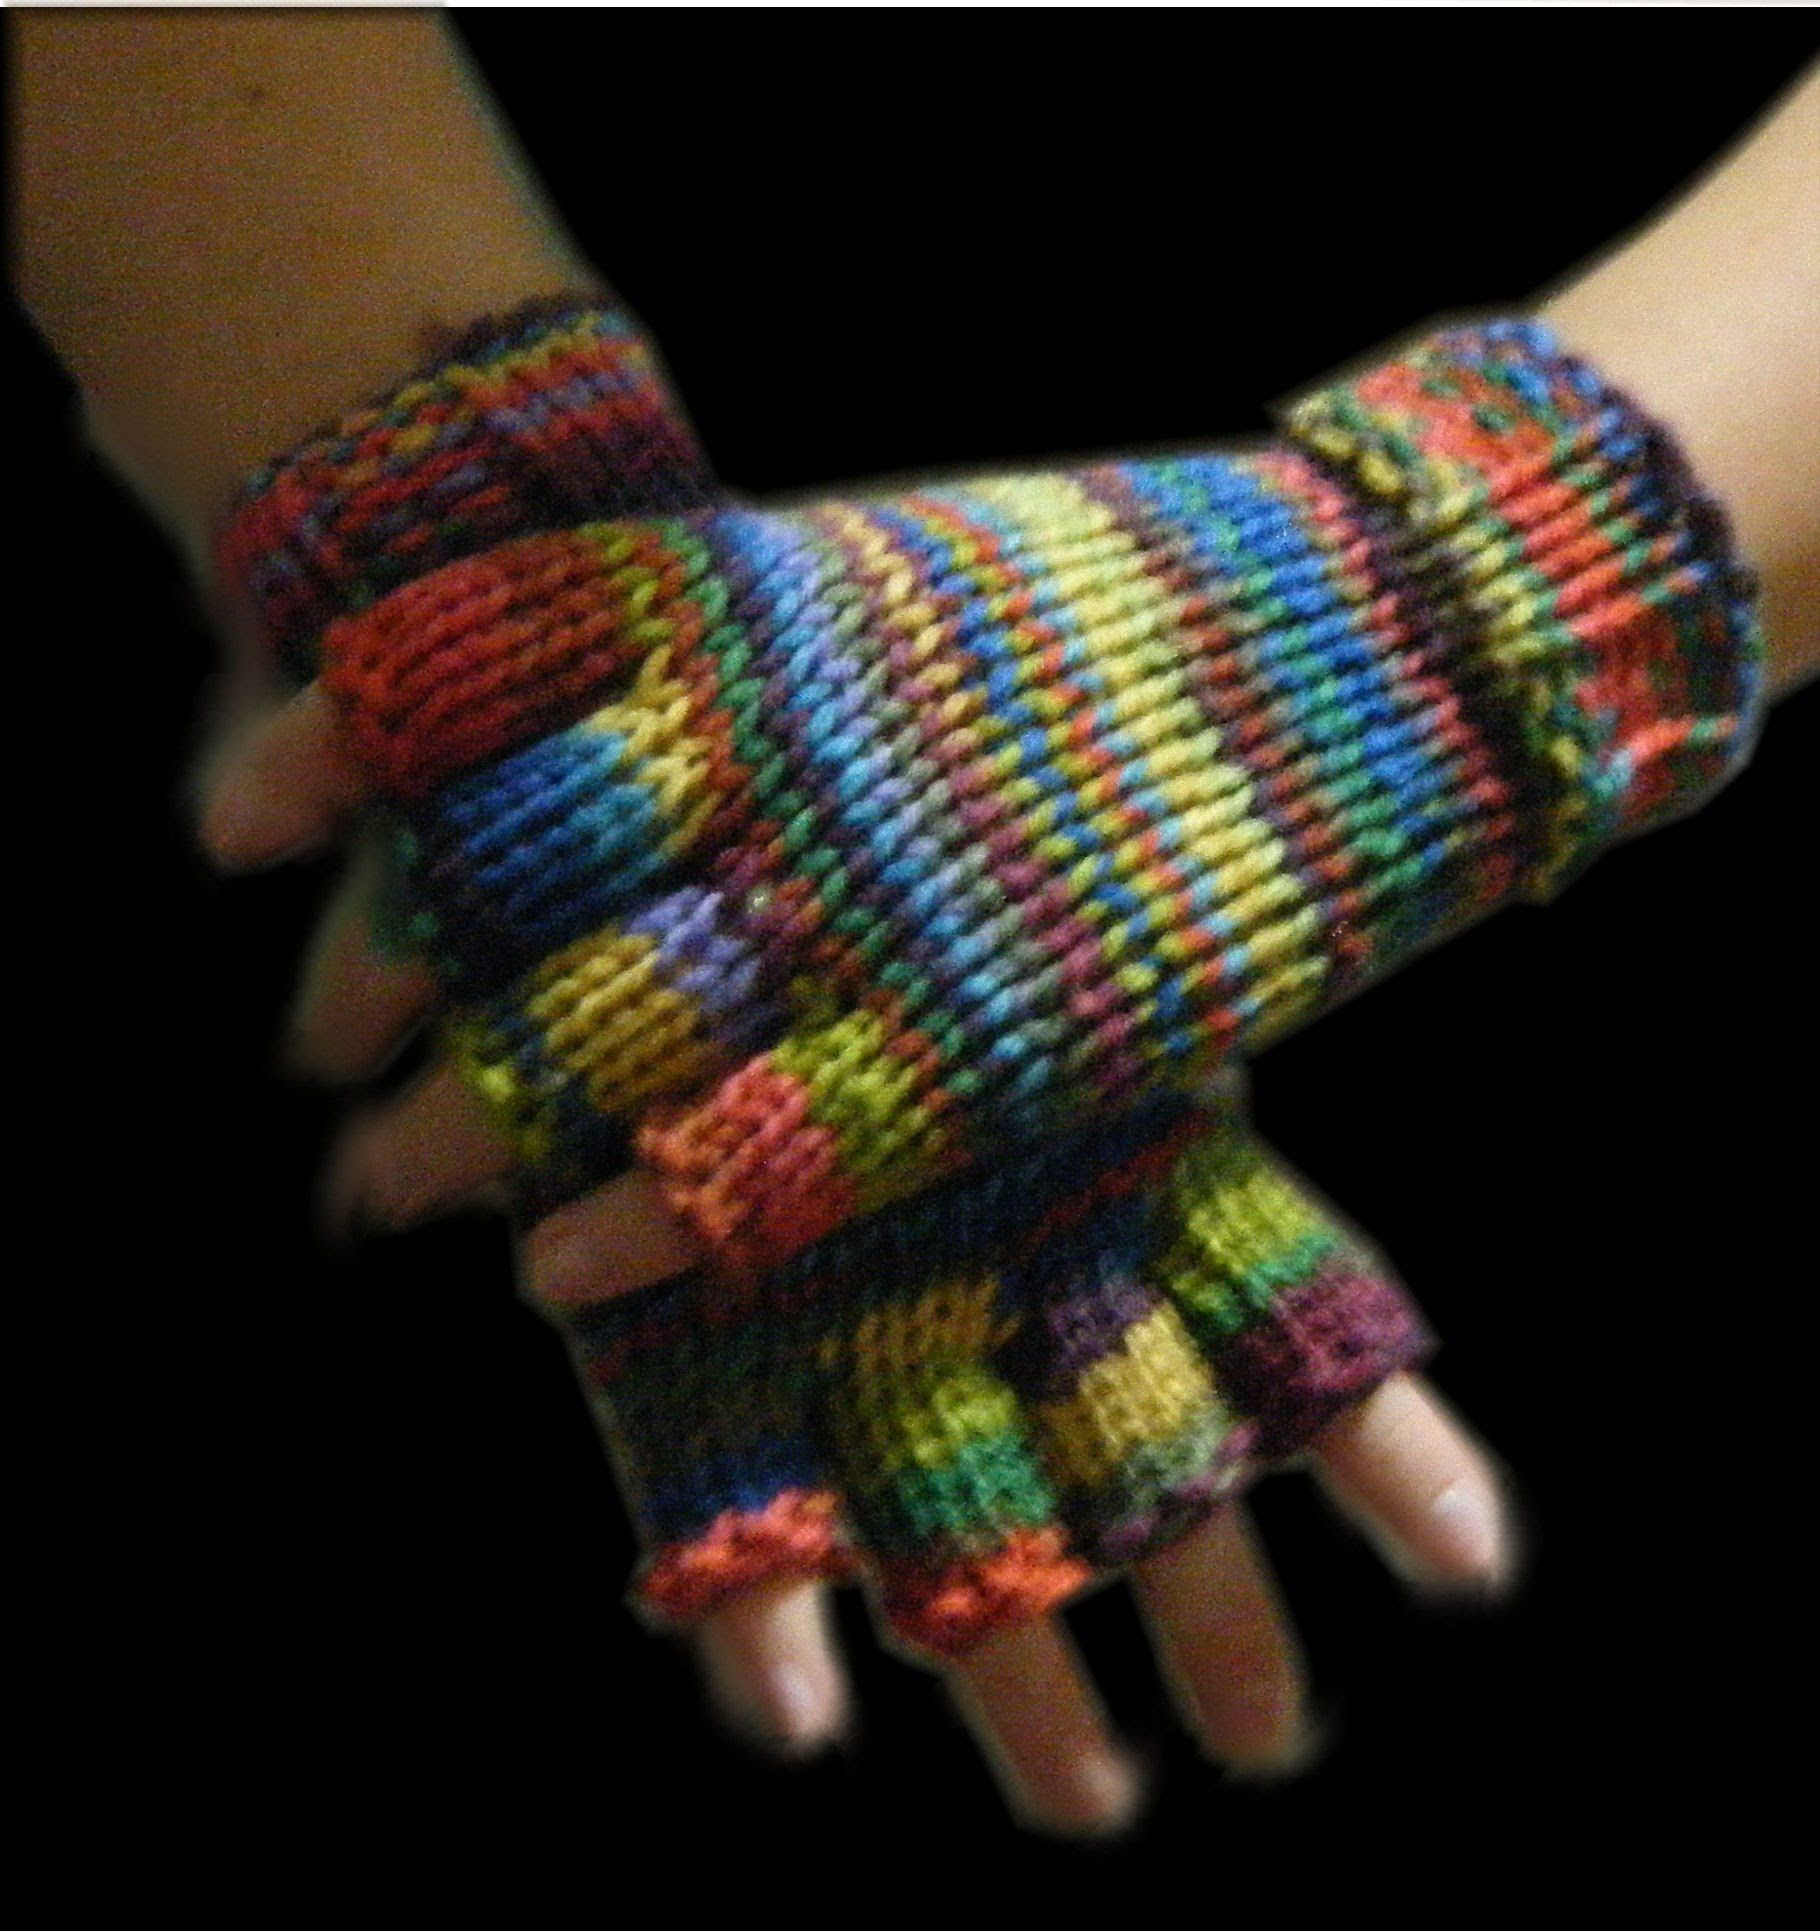 Knitting fingerless gloves in the round - The Video In This Post Teaches You How To Use Your Loom To Loom Knit Half Finger Gloves These Gloves Are Good To Have If Your Cell Phone Is The Touch